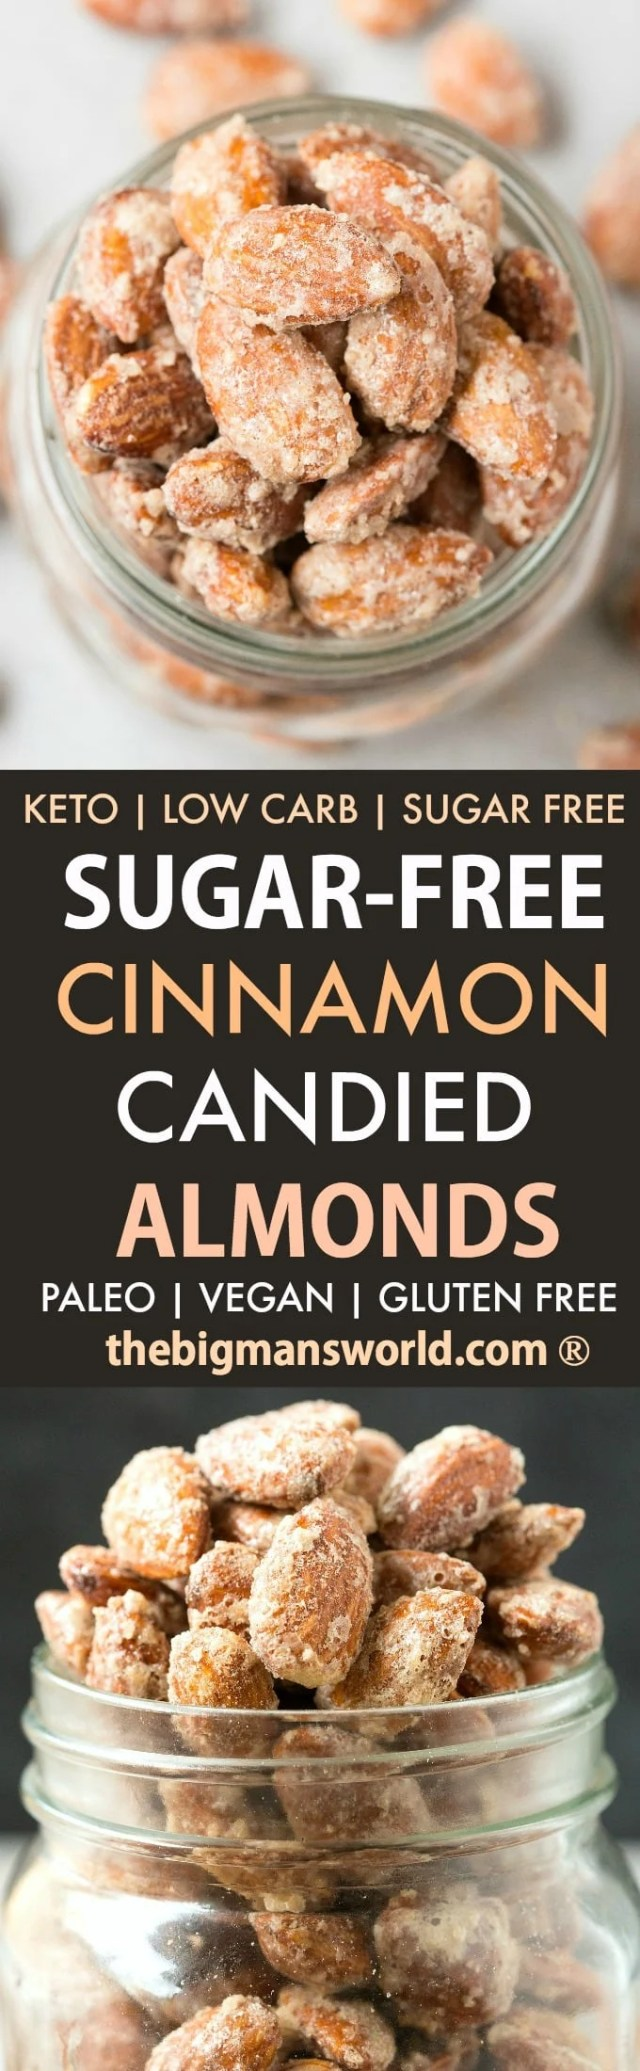 A collage of sugar free candied almonds made in a skillet